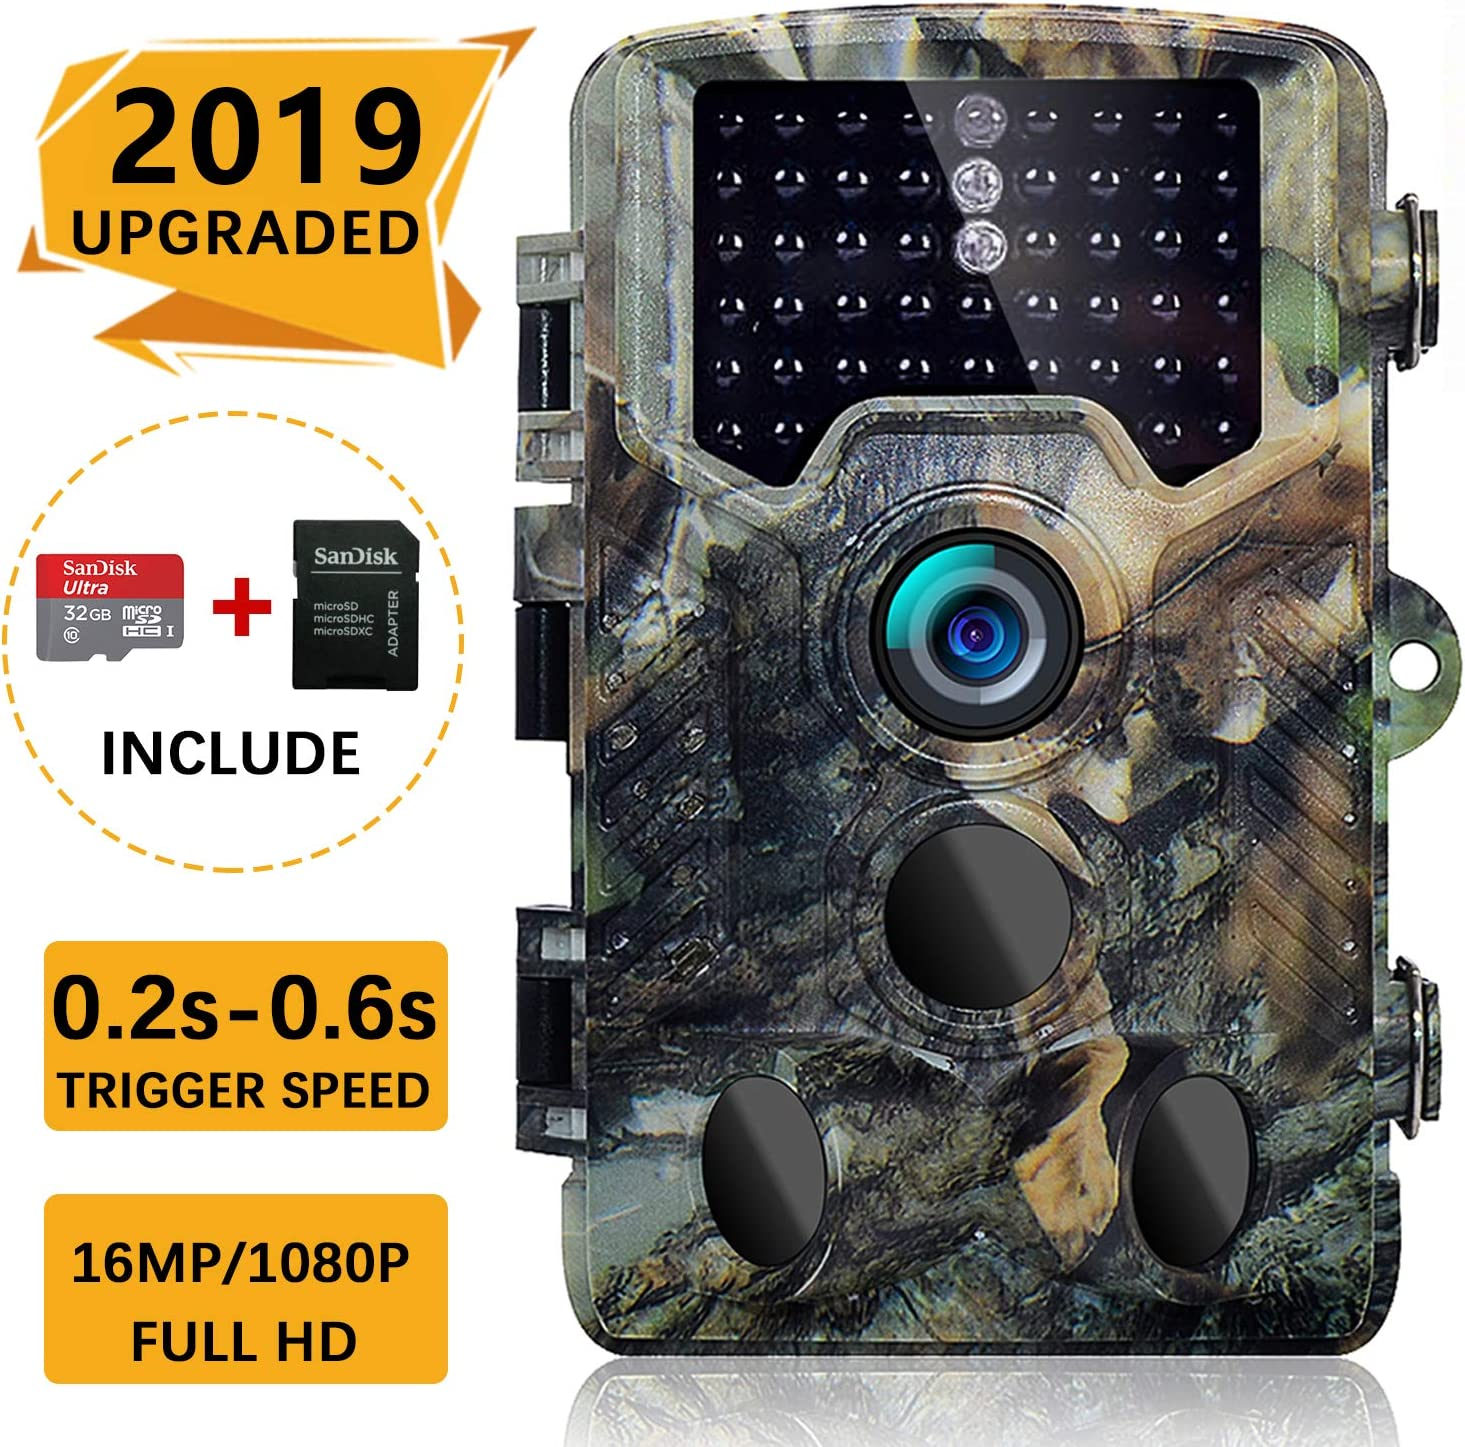 SOVACAM 2019 Upgraded Trail Camera, 16MP 1080P 2.4 LCD HD Deer Hunting Camera with 46pcs 850nm Low-Glow IR LEDs and 120 PIR Sensors,Up to 0.2s Trigger time,IP 56 Waterproof